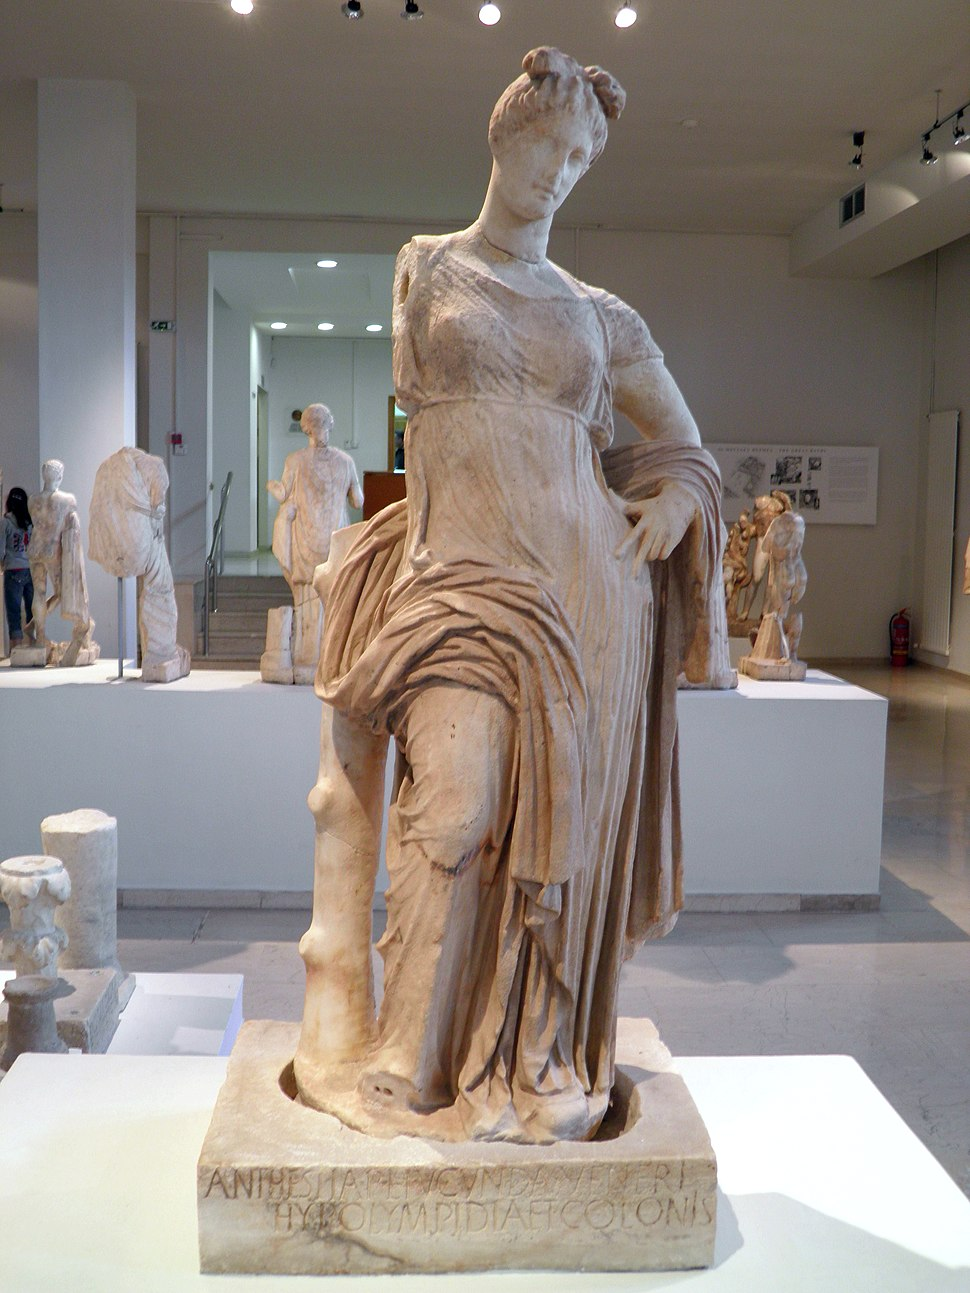 Marble cult statue of Aphrodite Hypolympidia, from the santuary of Isis, 2nd c. BC, Archaeological Museum, Dion (7079958443)